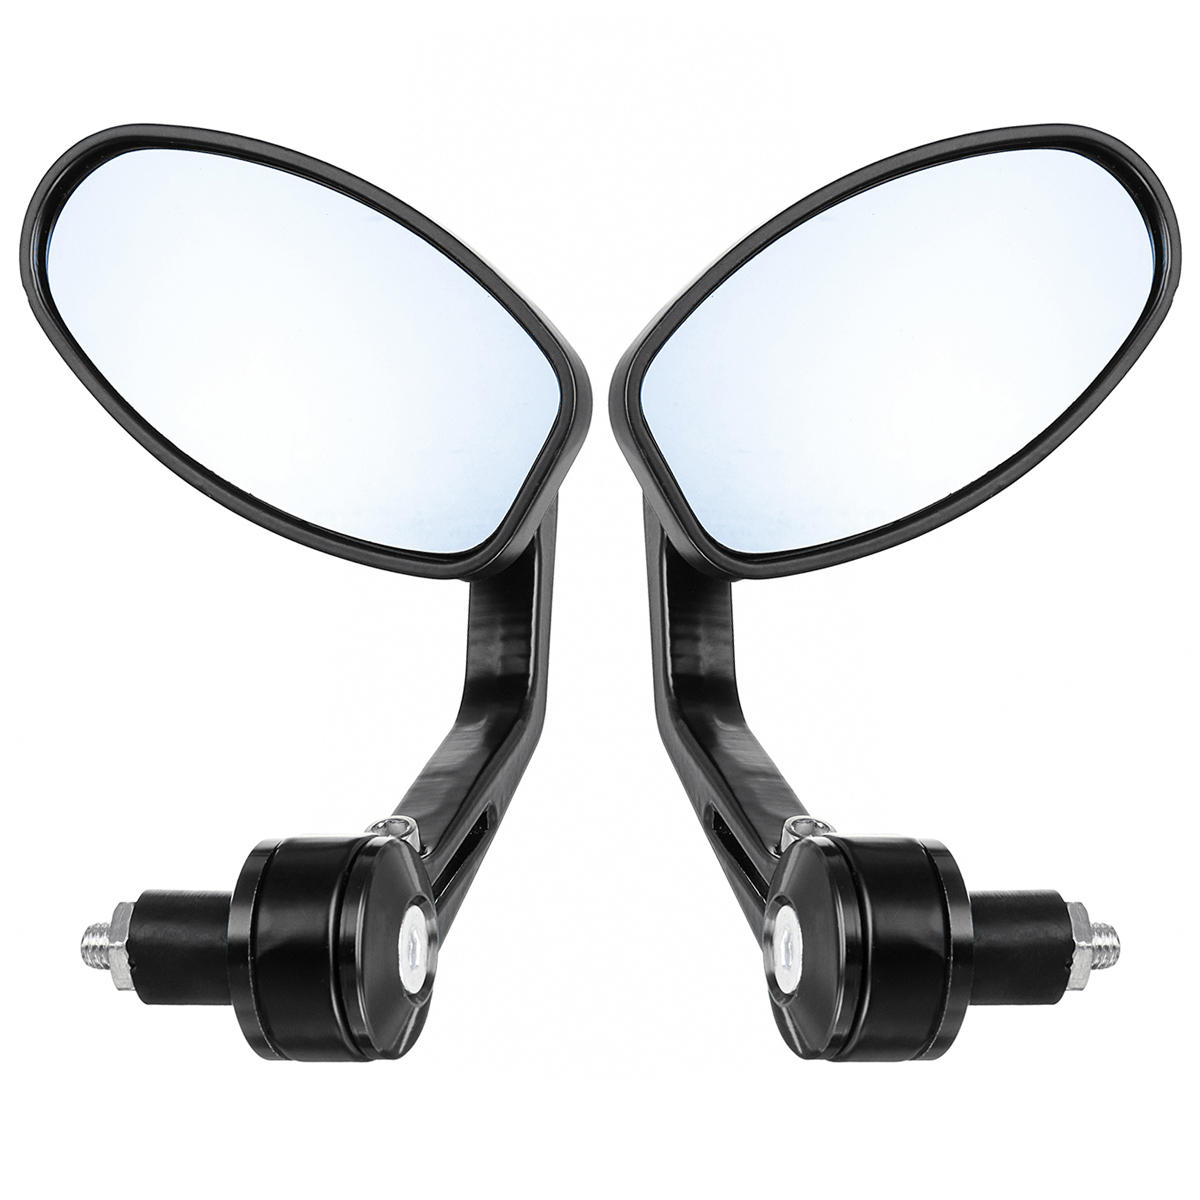 Pair Left Right Universal Handlebar Rearview Side Mirrors Motorcycle Scooter фото